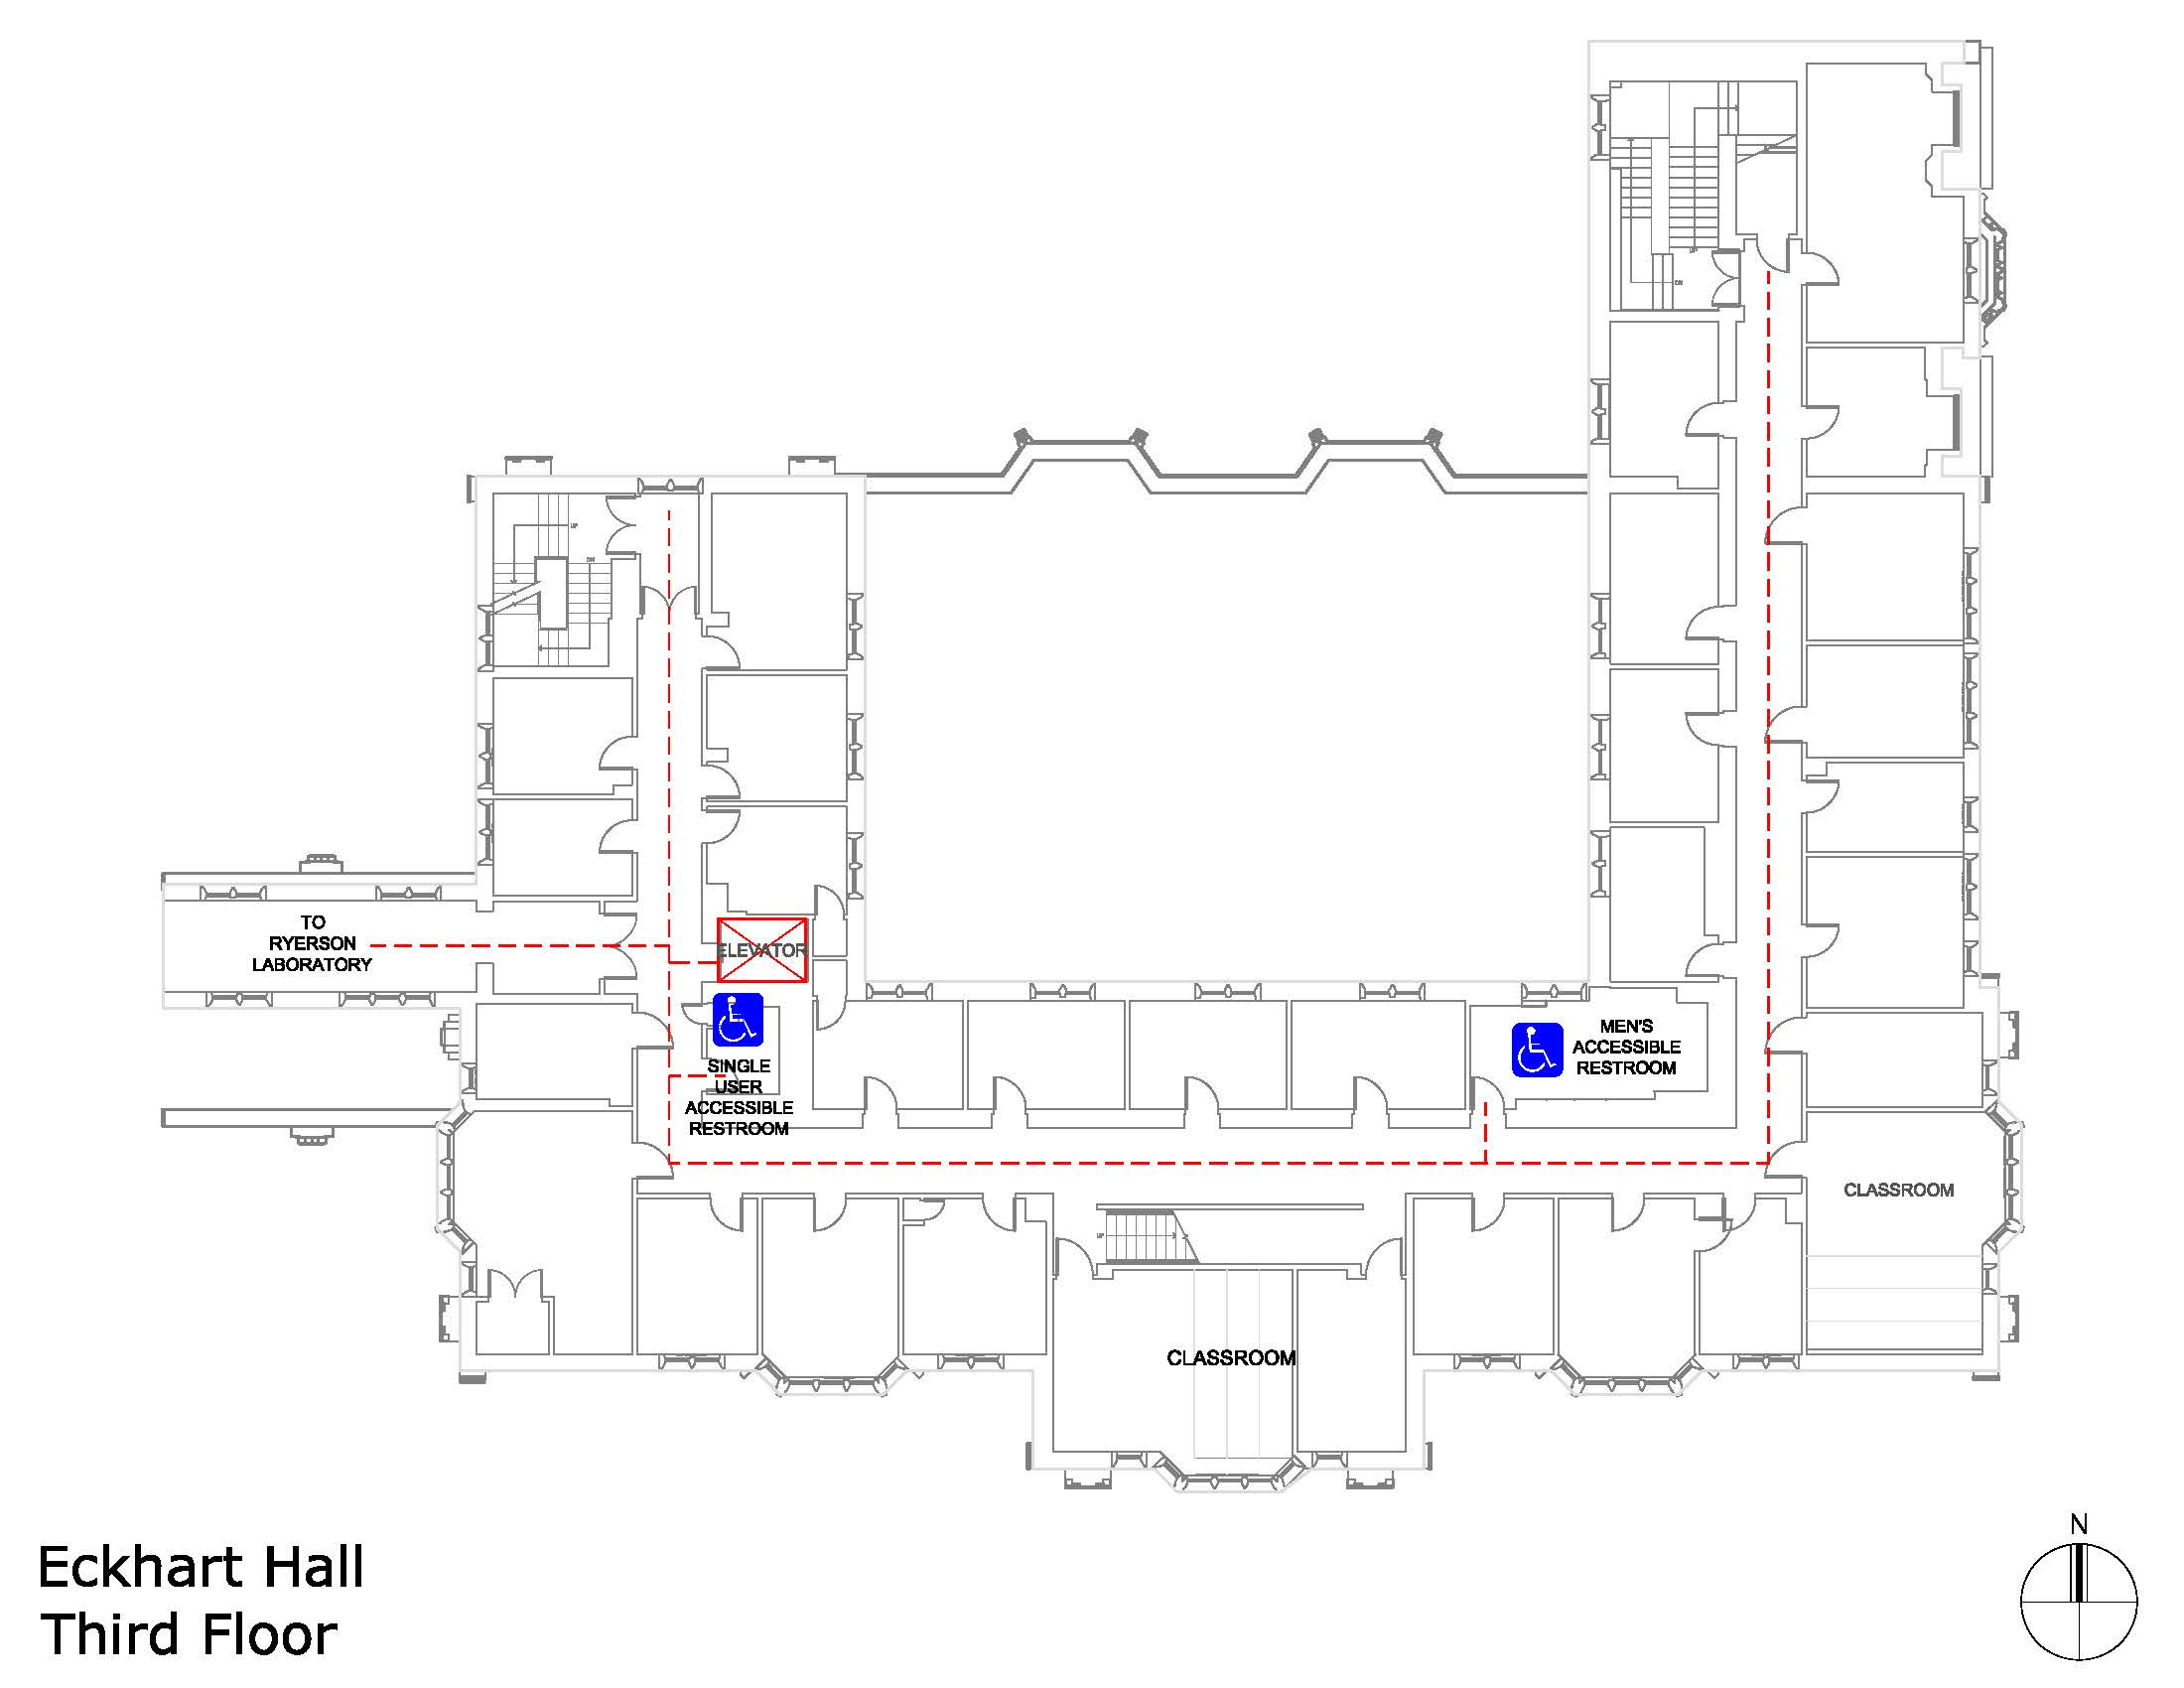 Eckhart Hall third floor accessible areas